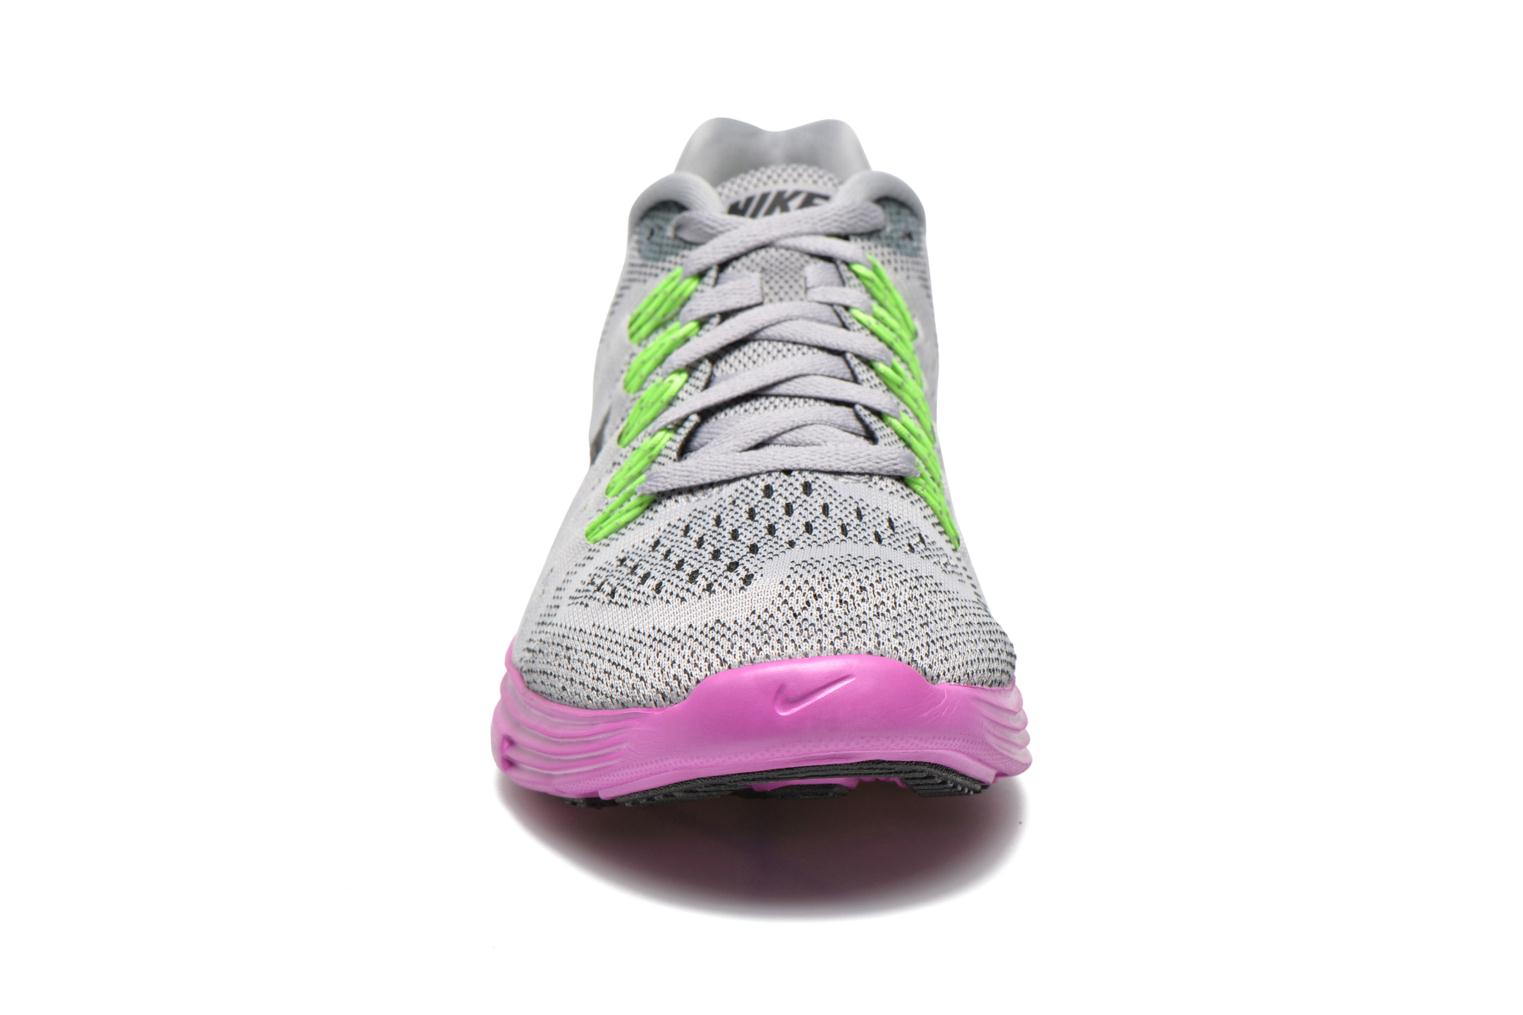 Wmns Nike Lunartempo Wolf Grey/Black-Fuchsia Flash